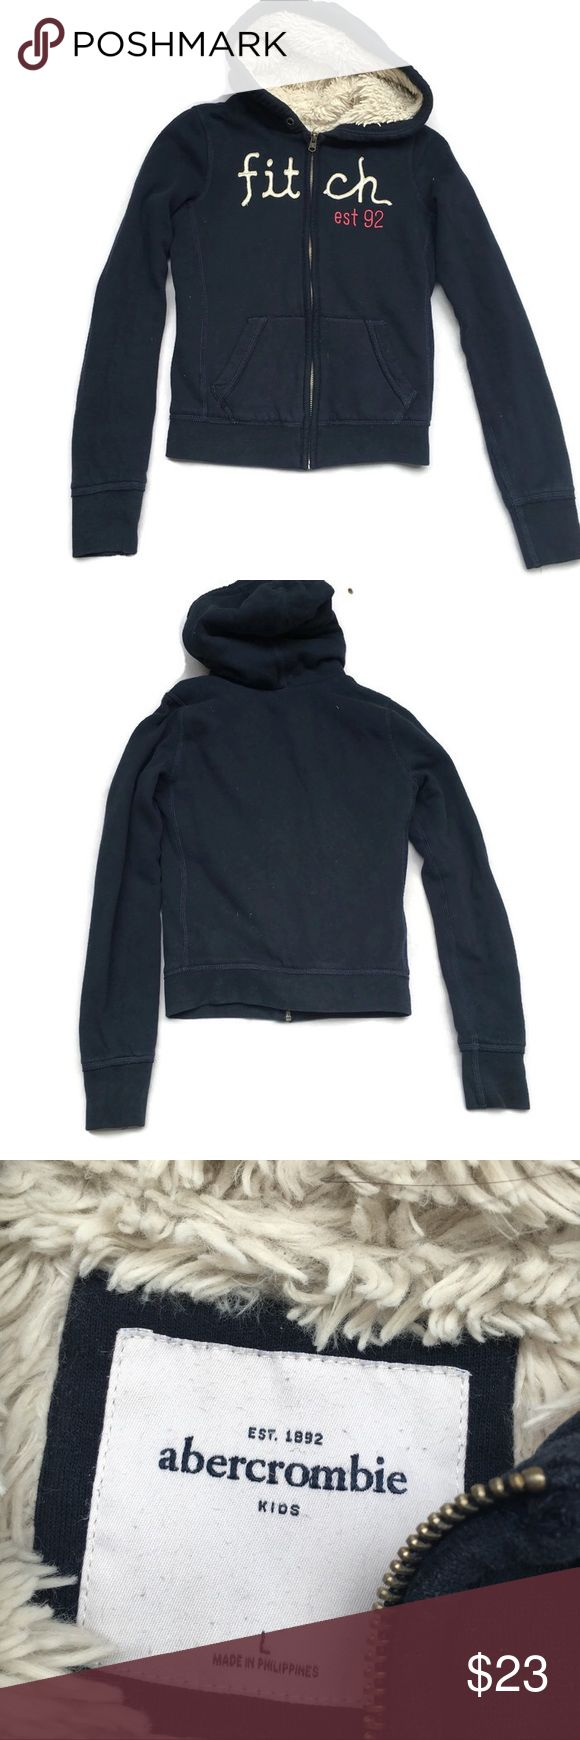 Abercrombie Girls navy blue thick lined hoodie L Abercrombie Girls navy blue thick lined hoodie Size large small stain on hoodie can't even see when worn otherwise great condition from a smoke free home abercrombie kids Shirts & Tops Sweatshirts & Hoodies